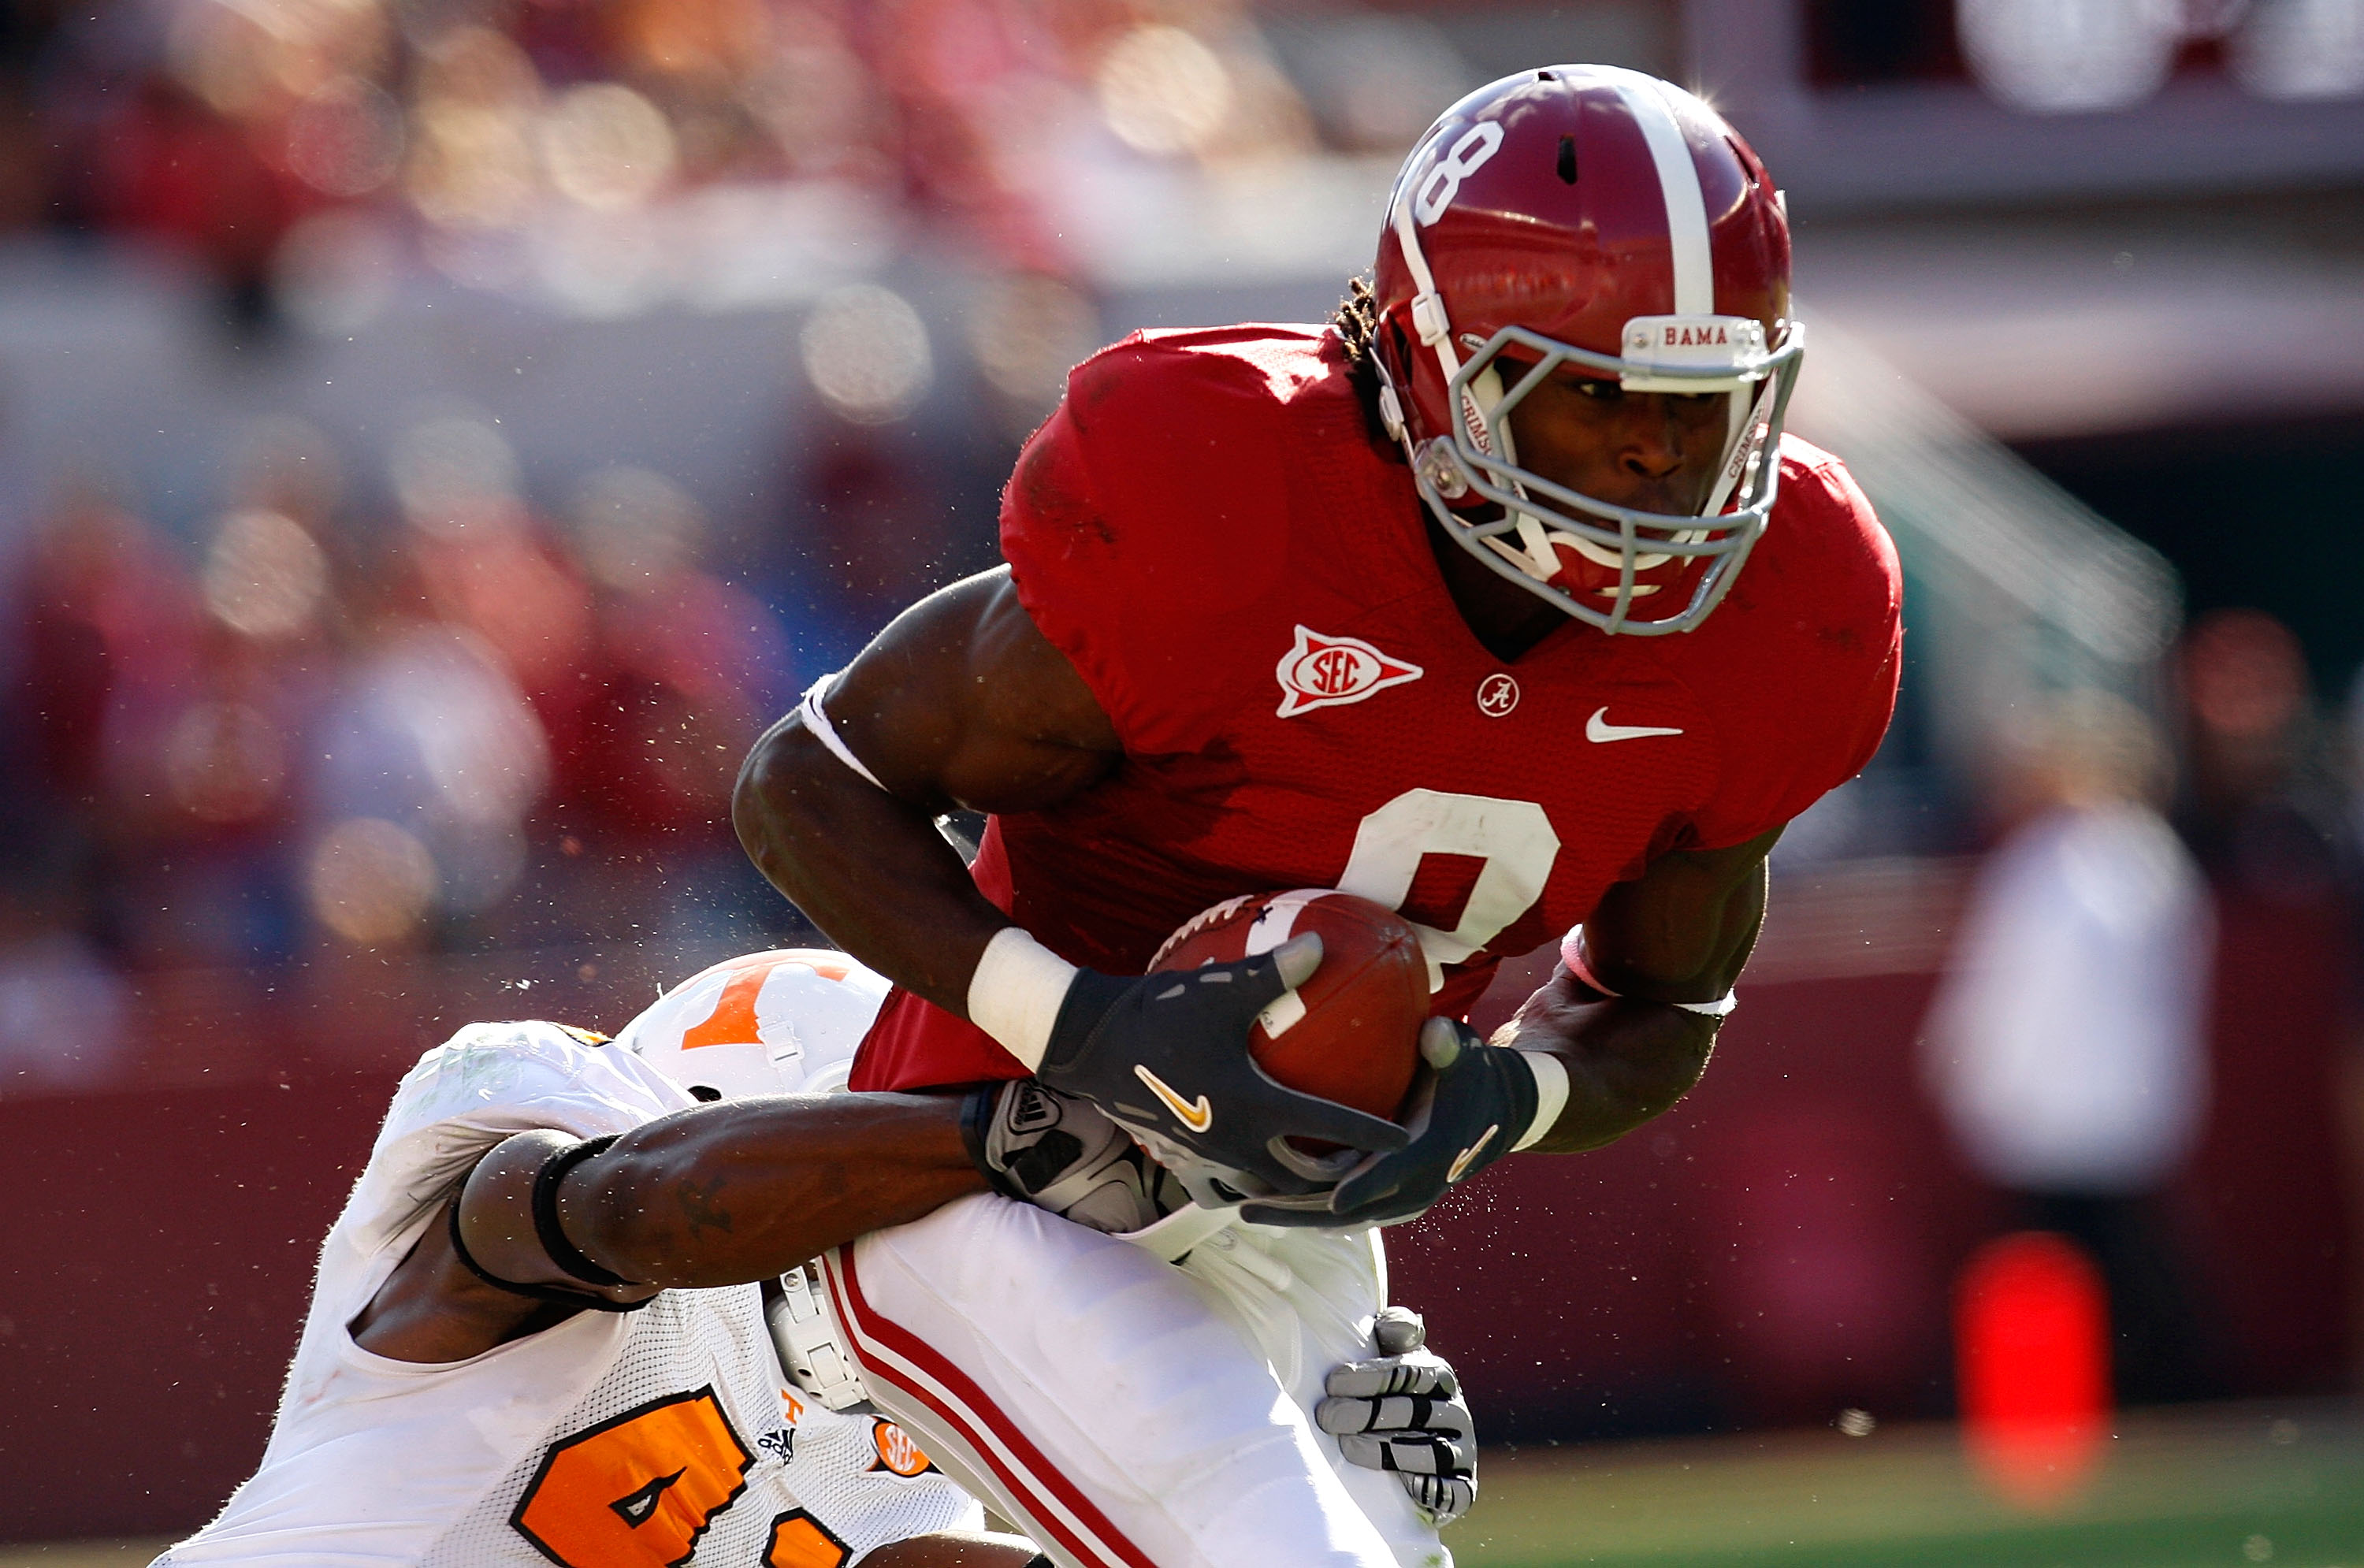 TUSCALOOSA, AL - OCTOBER 24:  Julio Jones #8 of the Alabama Crimson Tide is tackled by Dennis Rogan #41 of the Tennessee Volunteers at Bryant-Denny Stadium on October 24, 2009 in Tuscaloosa, Alabama.  (Photo by Kevin C. Cox/Getty Images)